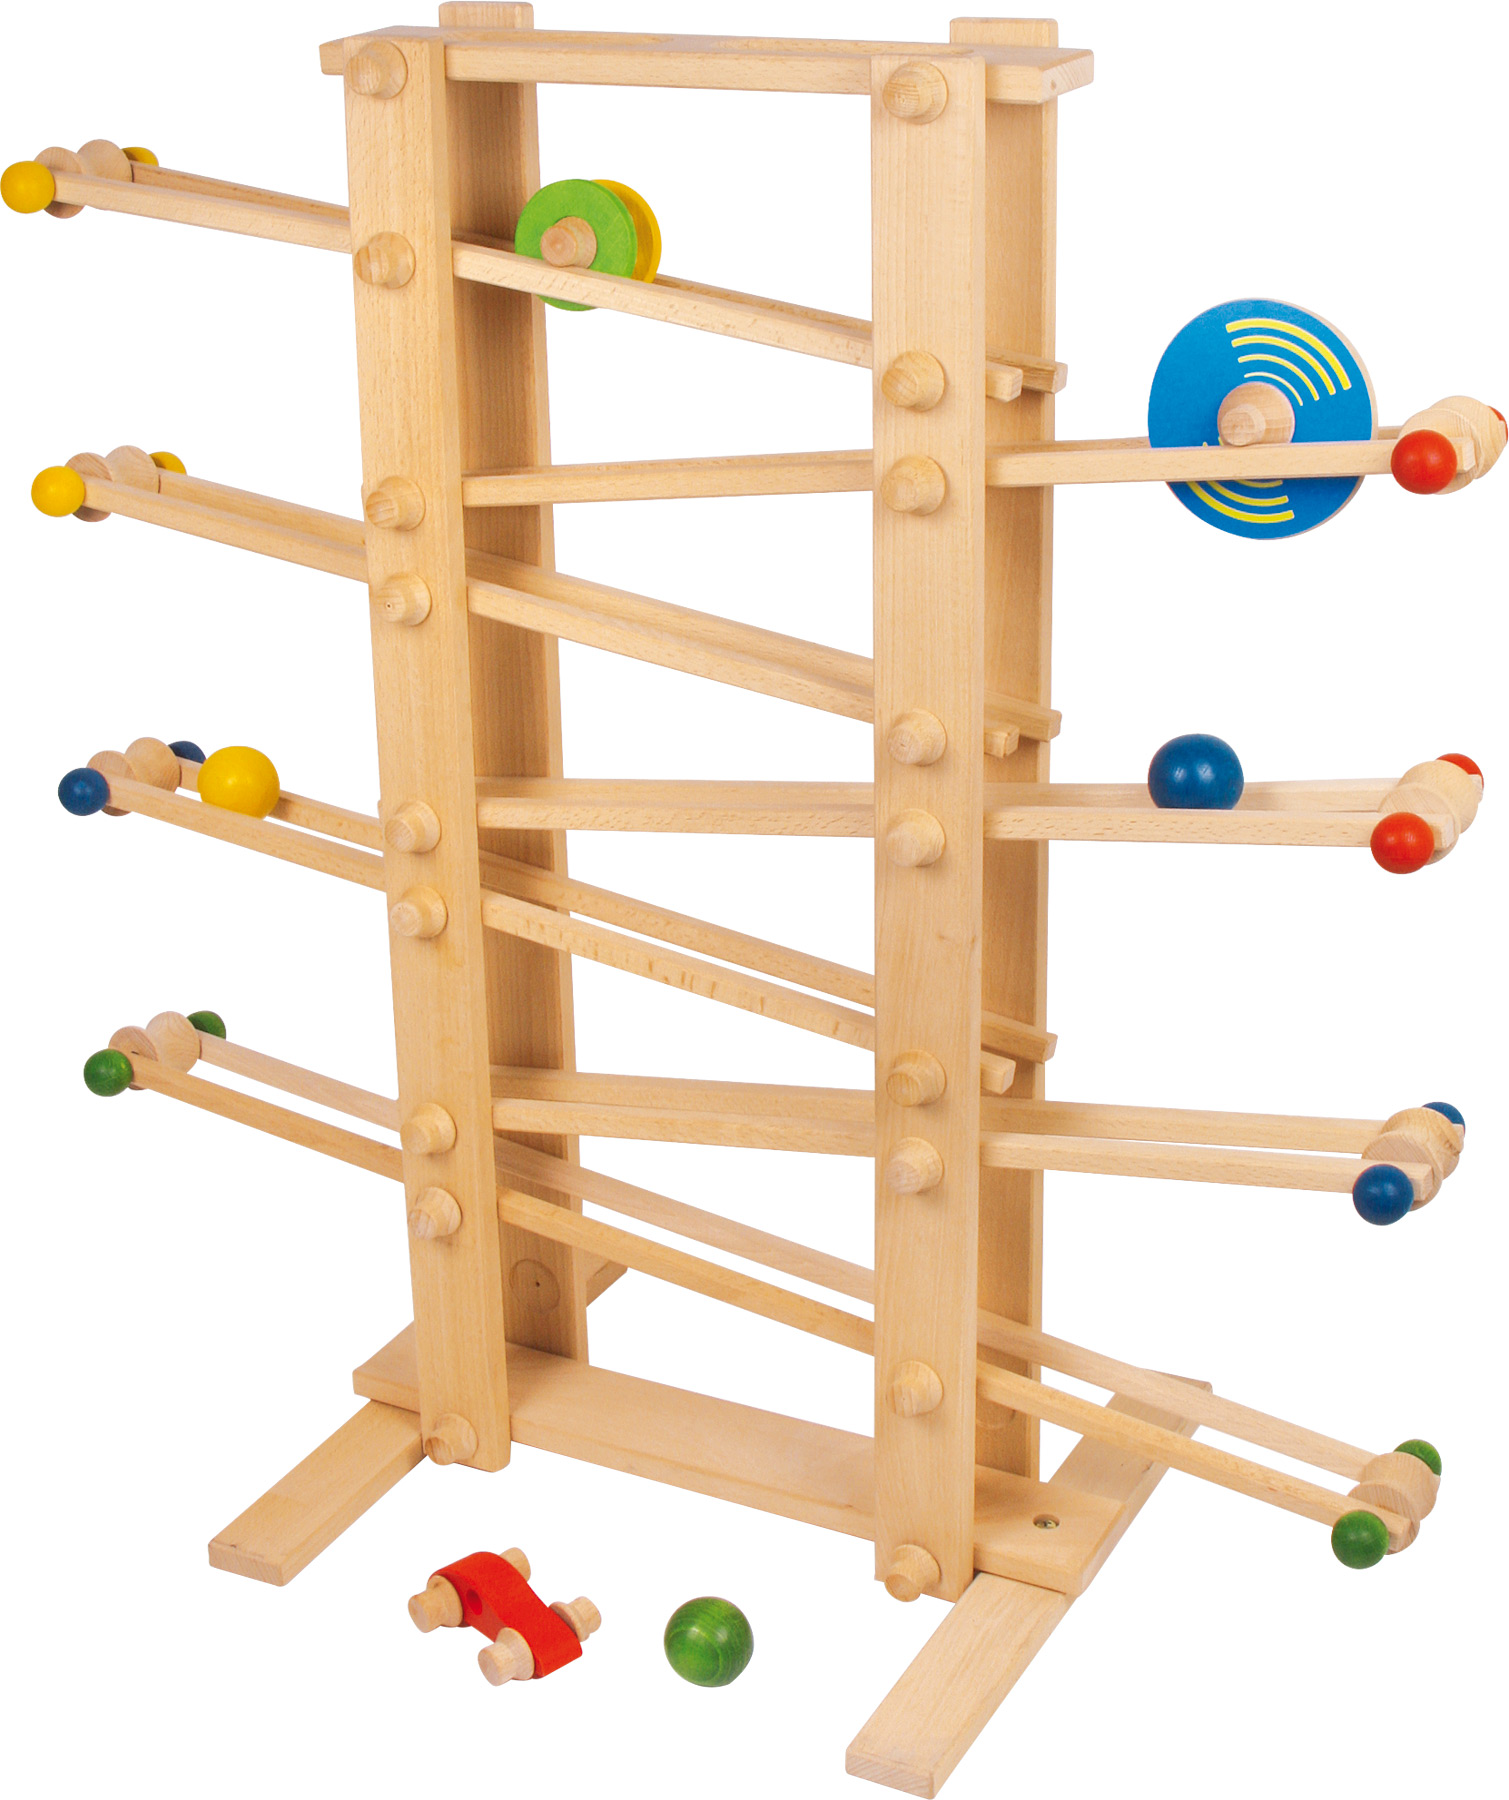 Wooden Toys • From The German Toy Specialists